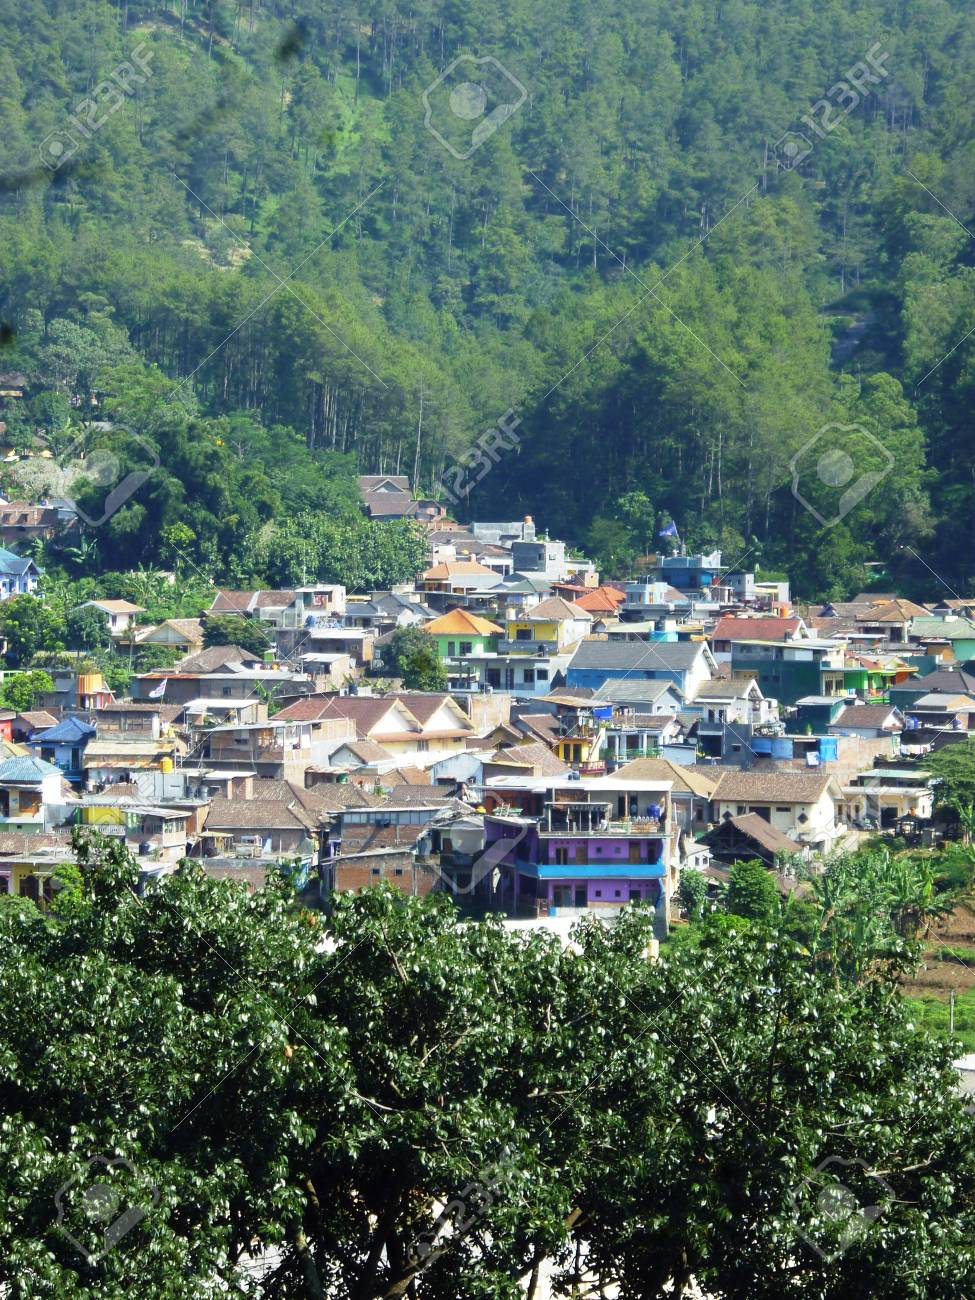 Residential Areas In Batu Hill Malang East Java Indonesia Stock Photo Picture And Royalty Free Image Image 28604013